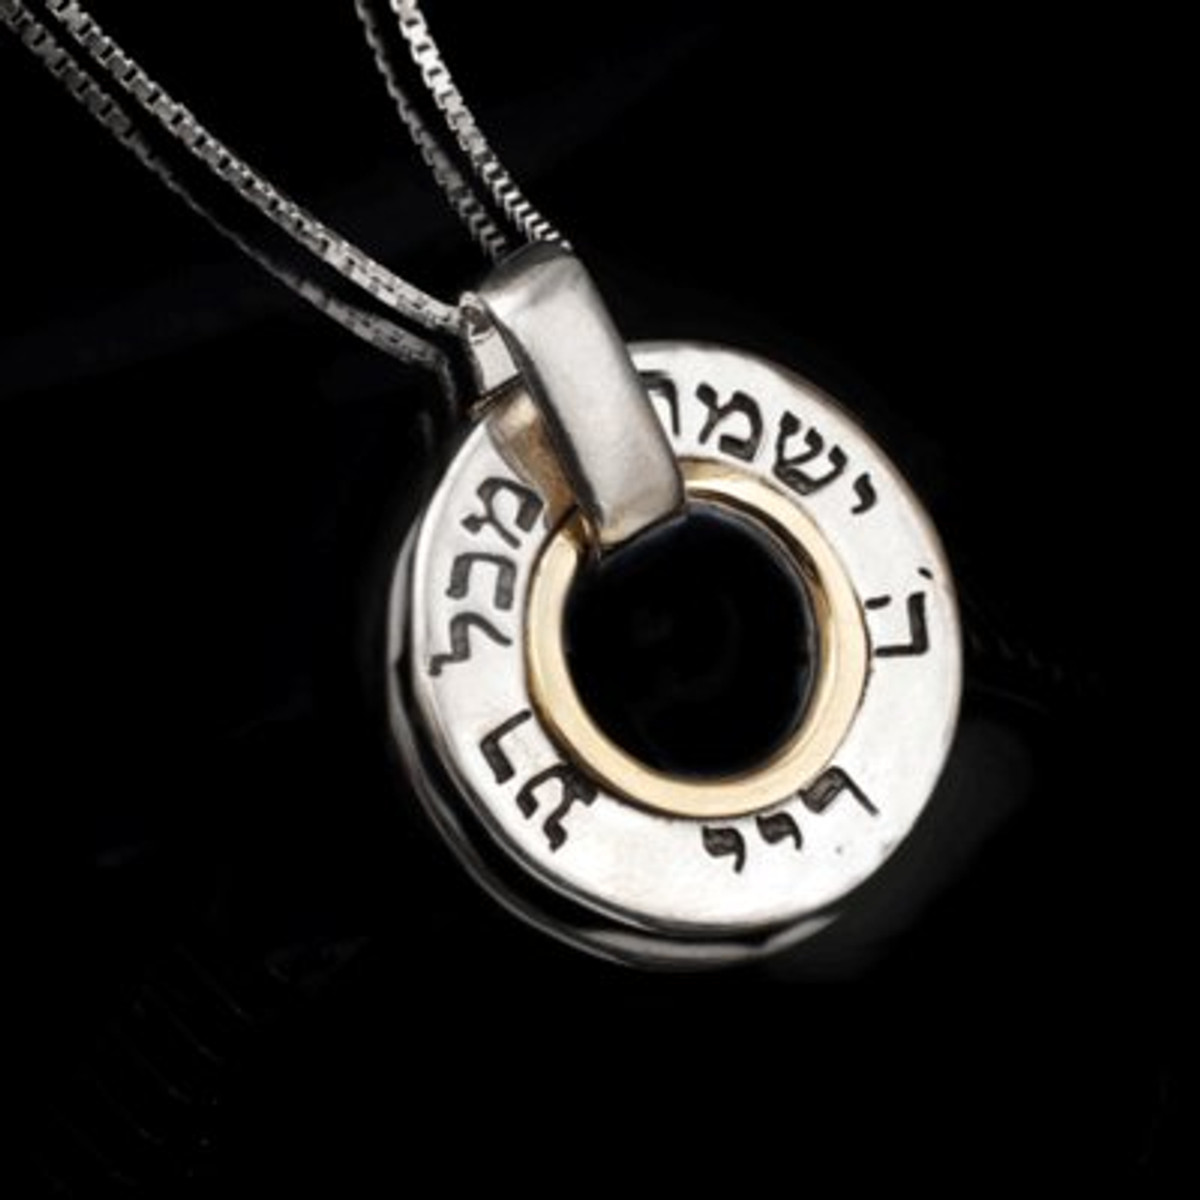 Kabbalah Jewelry Amulet Pendant For Peace And Protection With 72 Names Of God - One Left